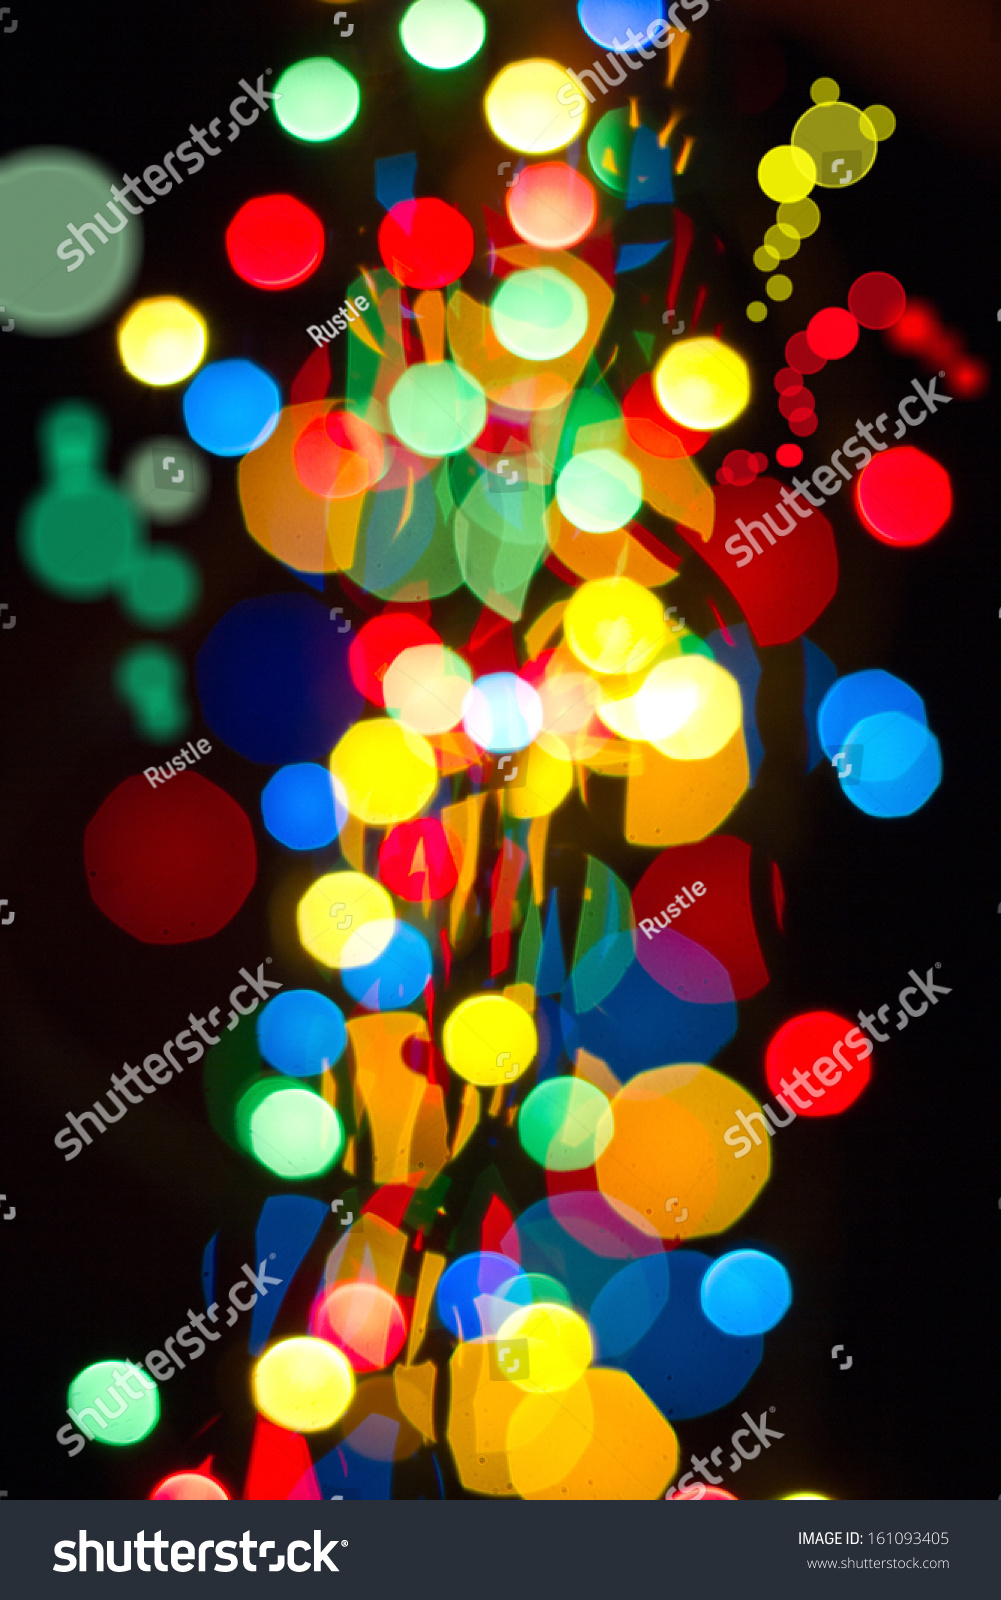 multicolored glowing background christmas card abstract